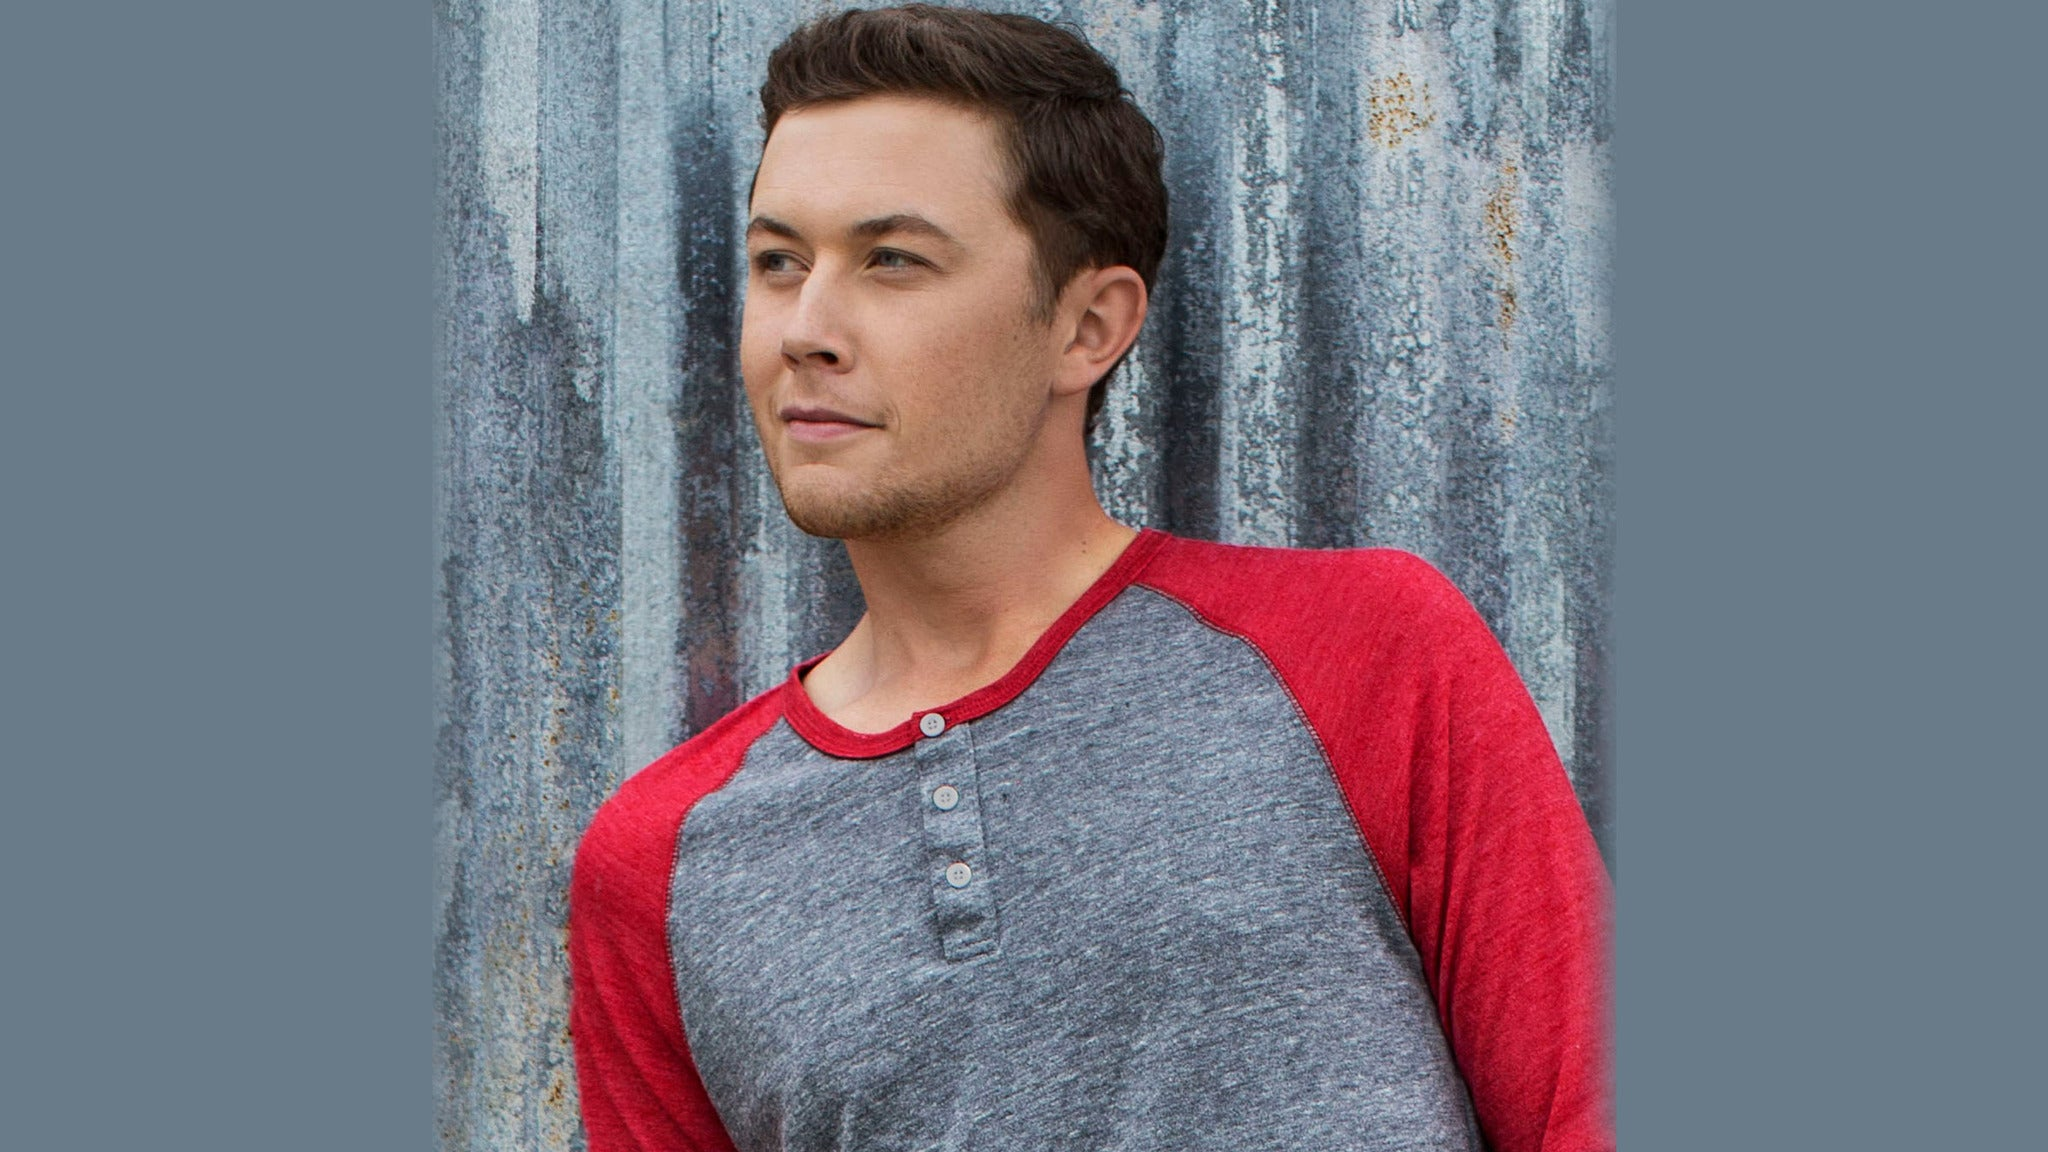 Scotty McCreery at Von Braun Center Concert Hall